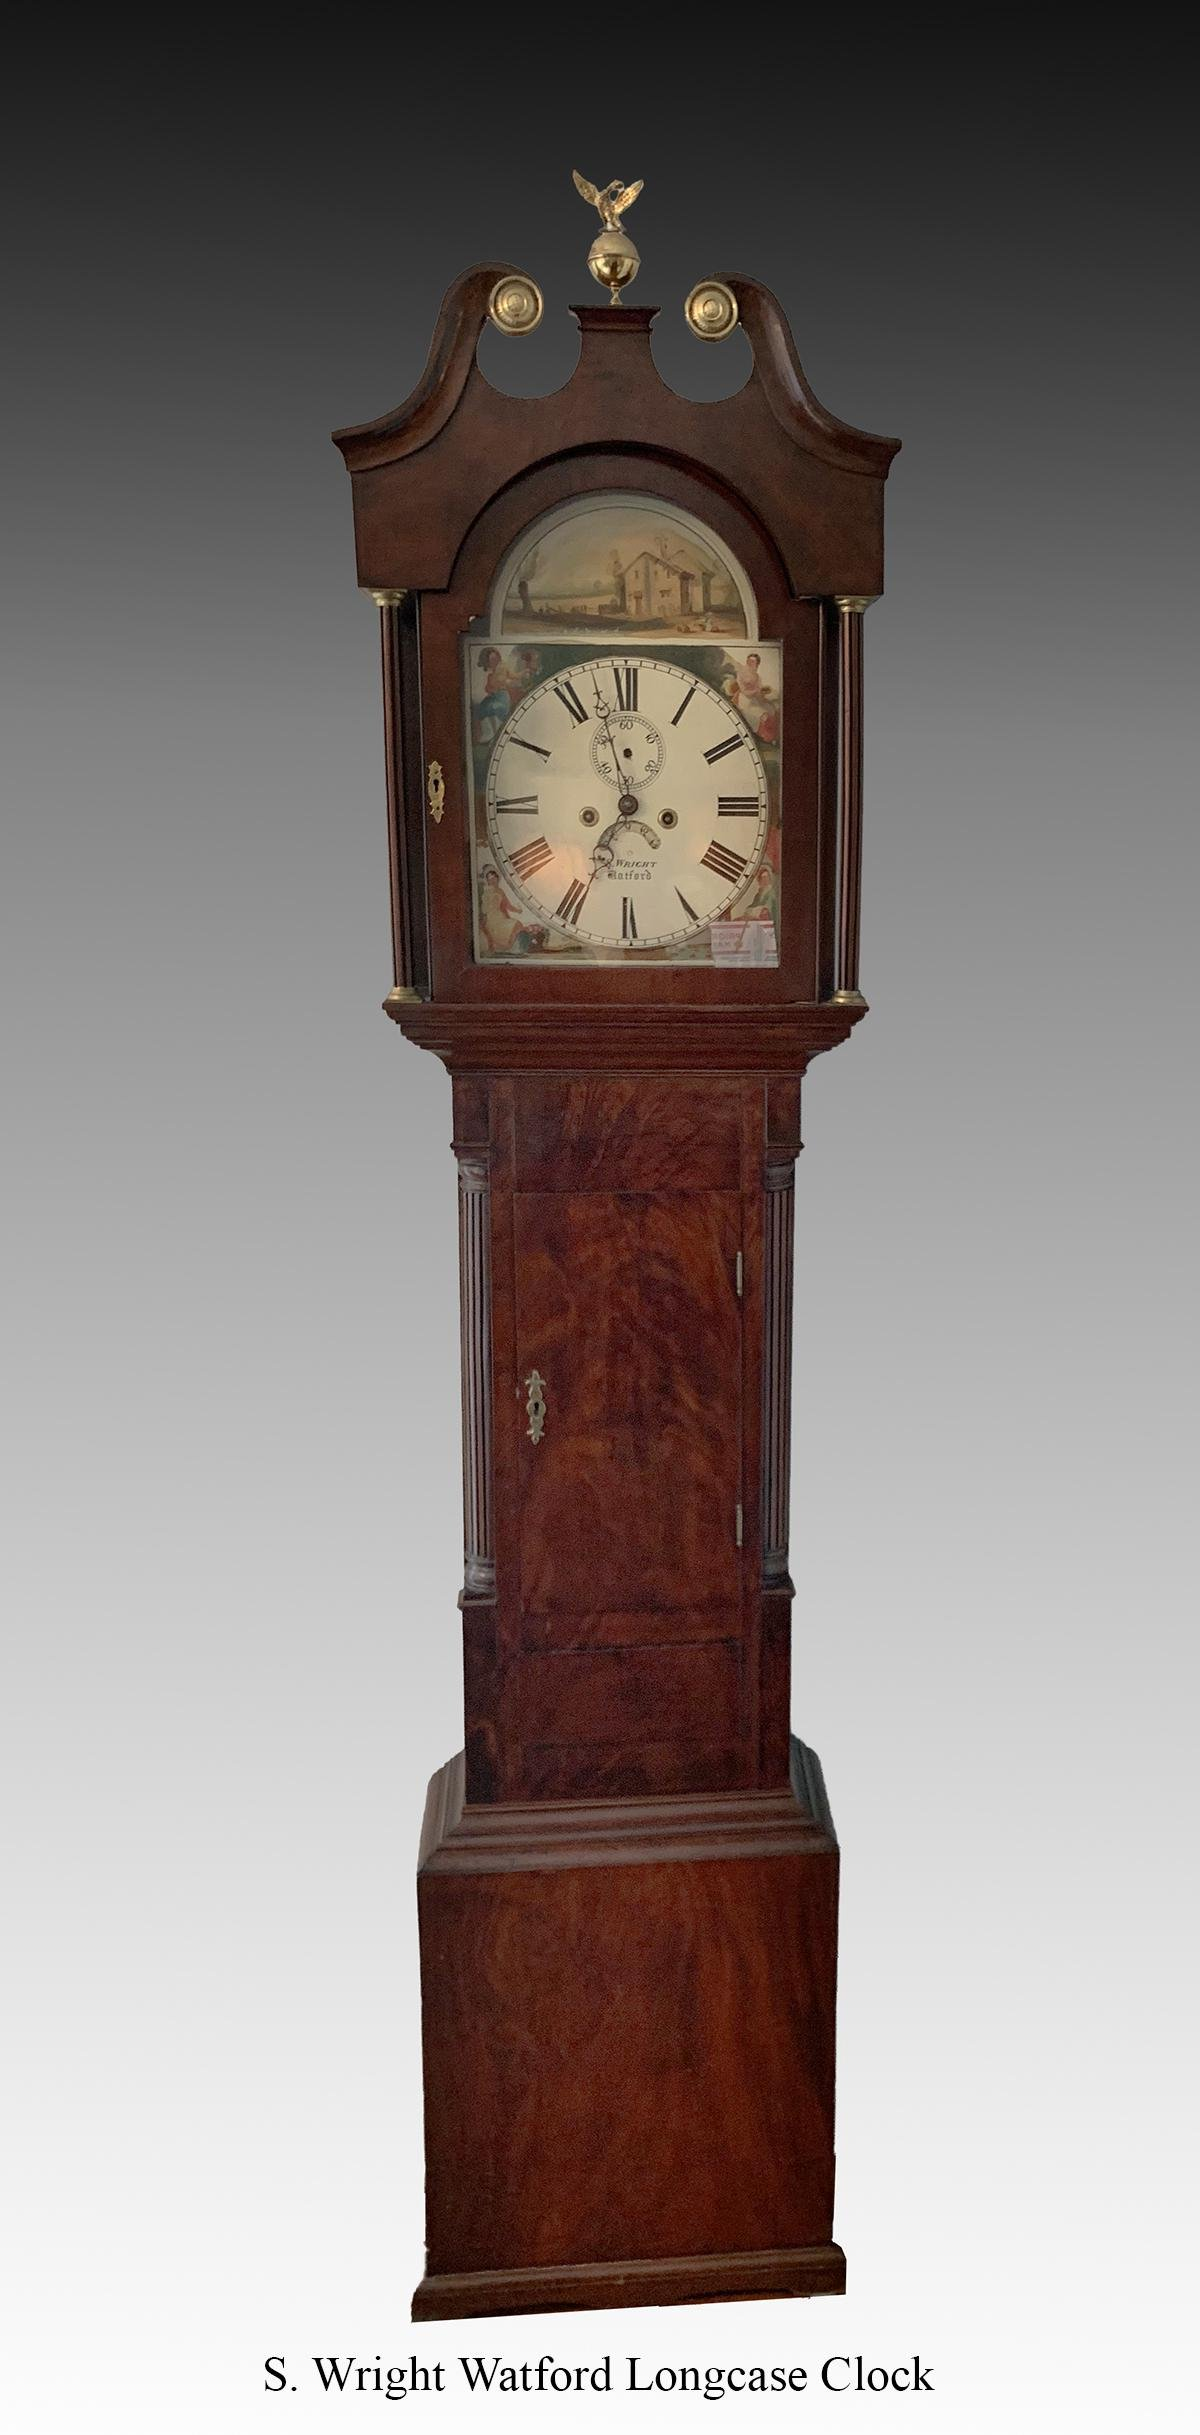 S. WRIGHT WATFORD GRANDFATHER CLOCK